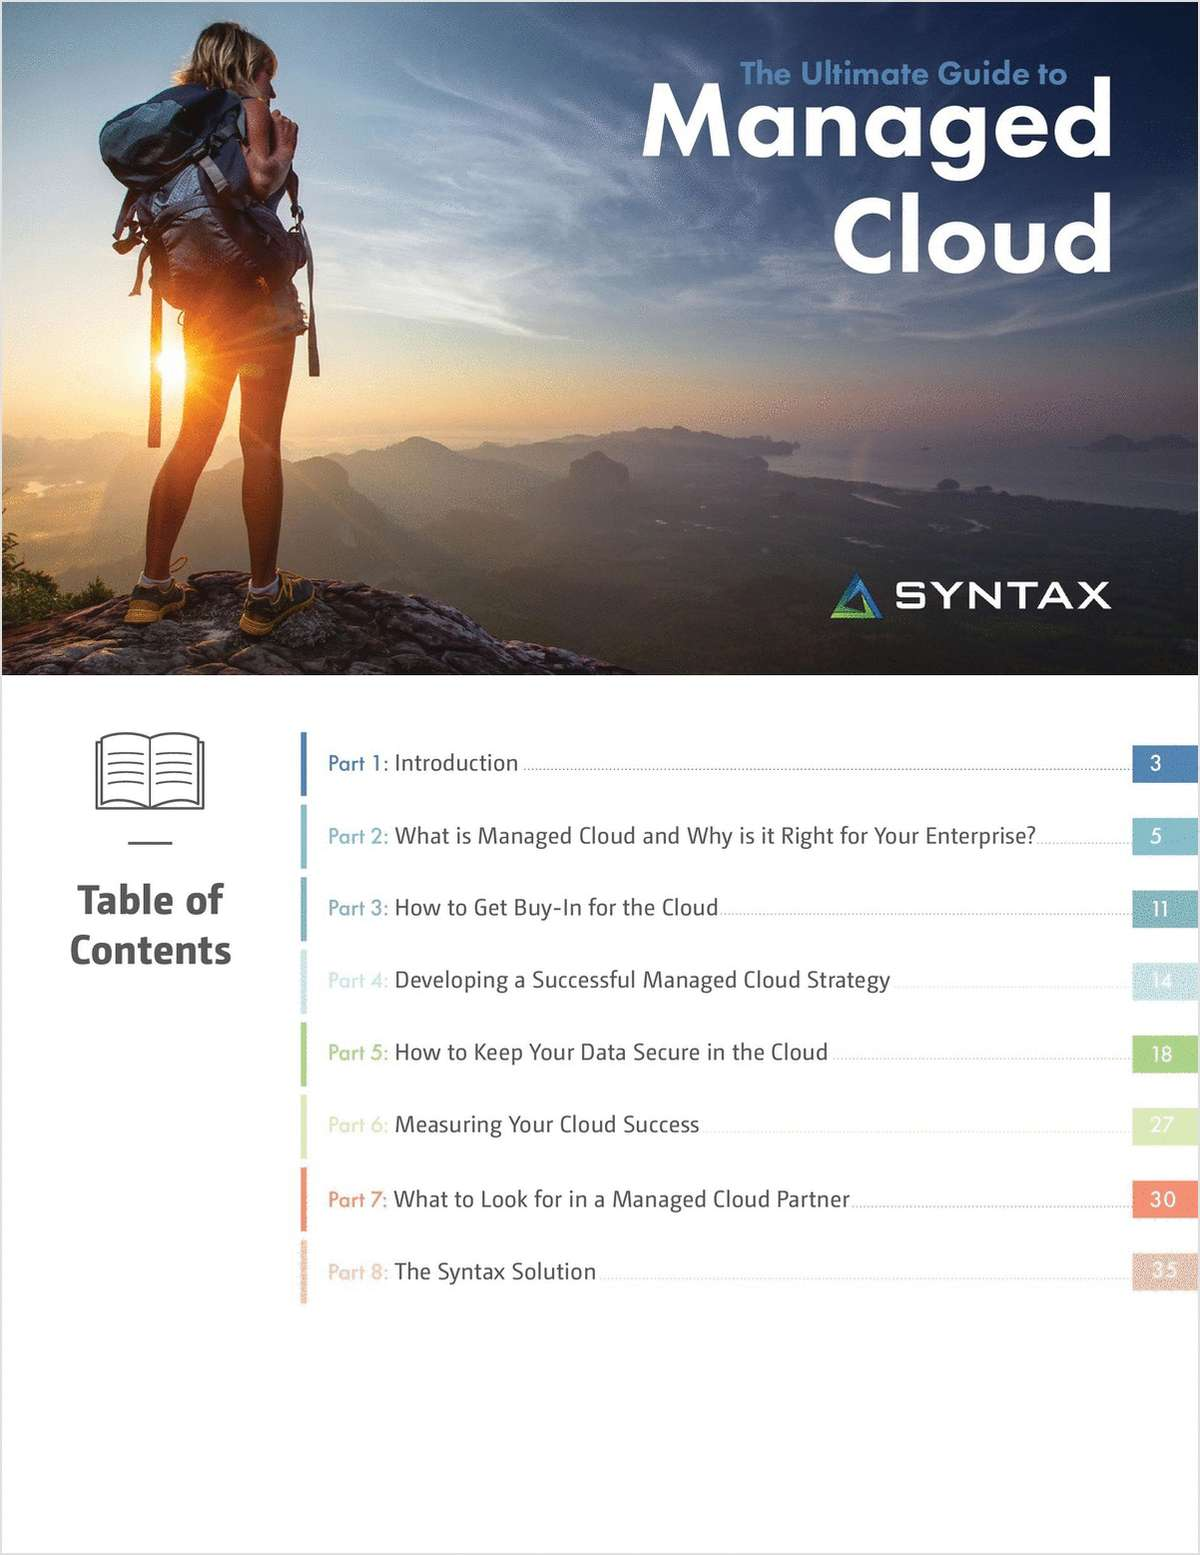 The Ultimate Guide to Managed Cloud